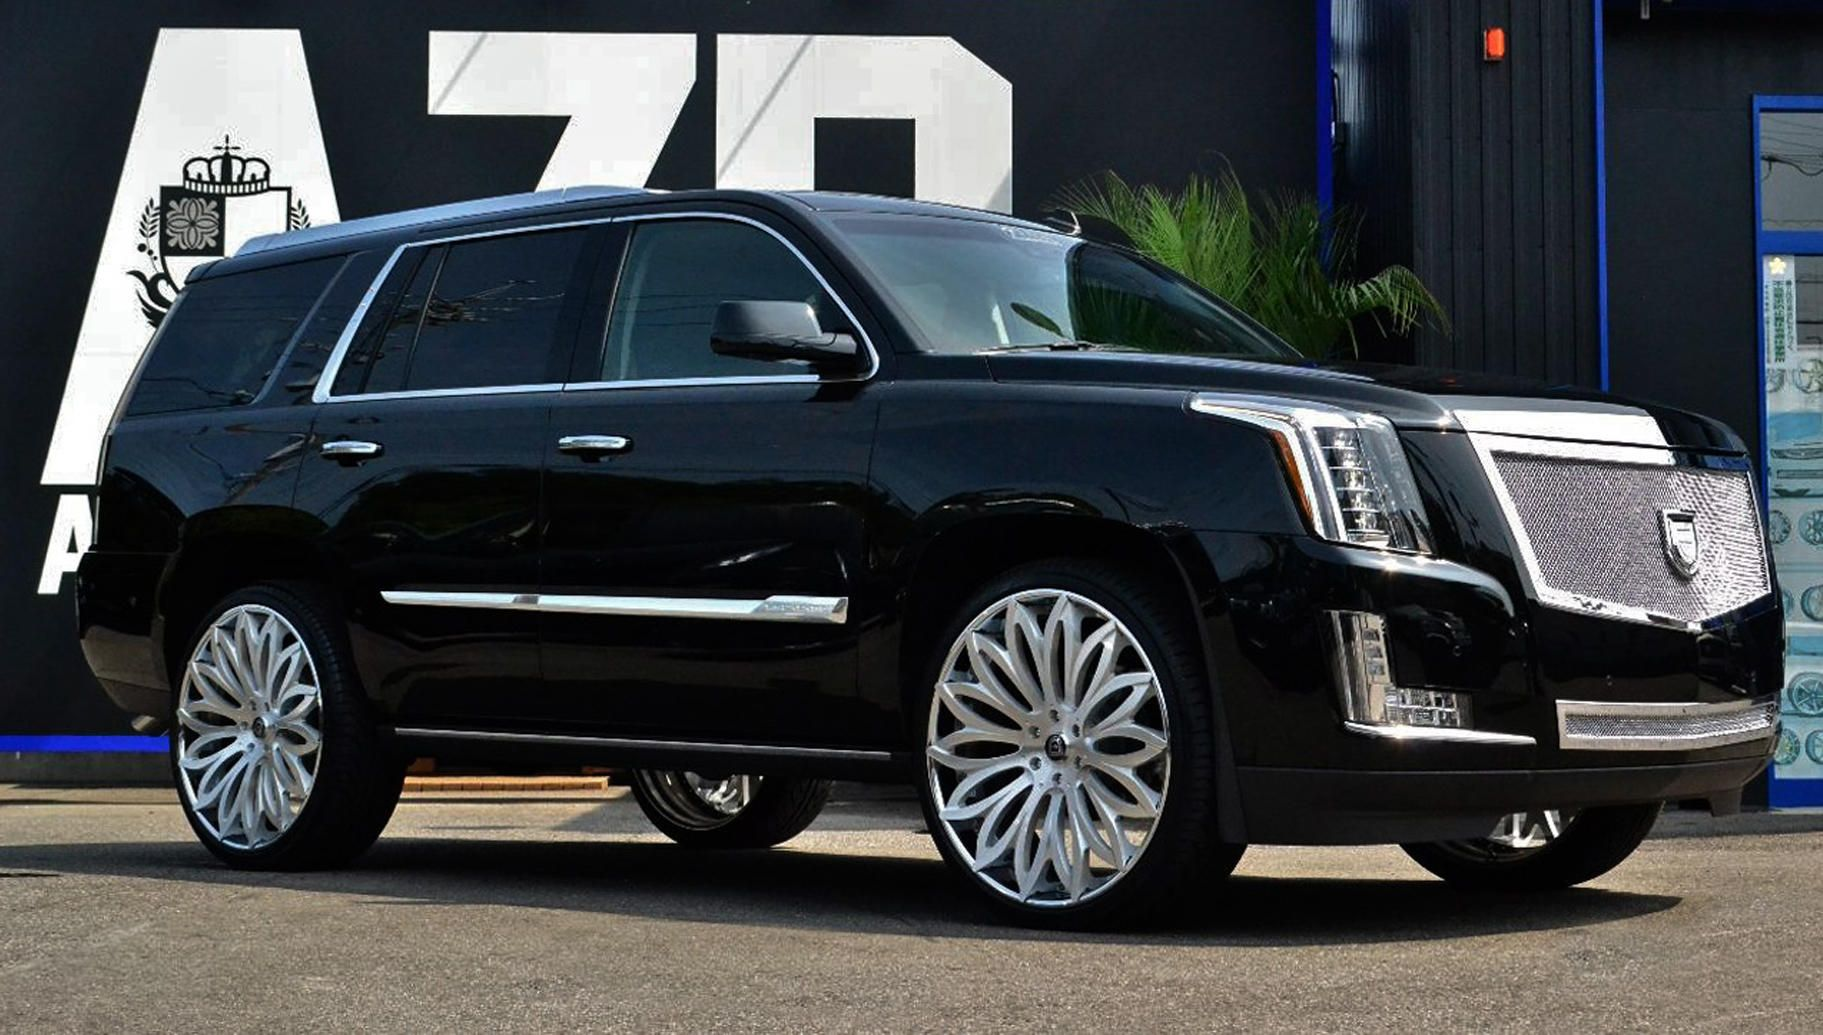 small resolution of lexani wheels the leader in custom luxury wheels lf 731 brushed center with stainless steel chrome lip on the 2015 cadillac escalade